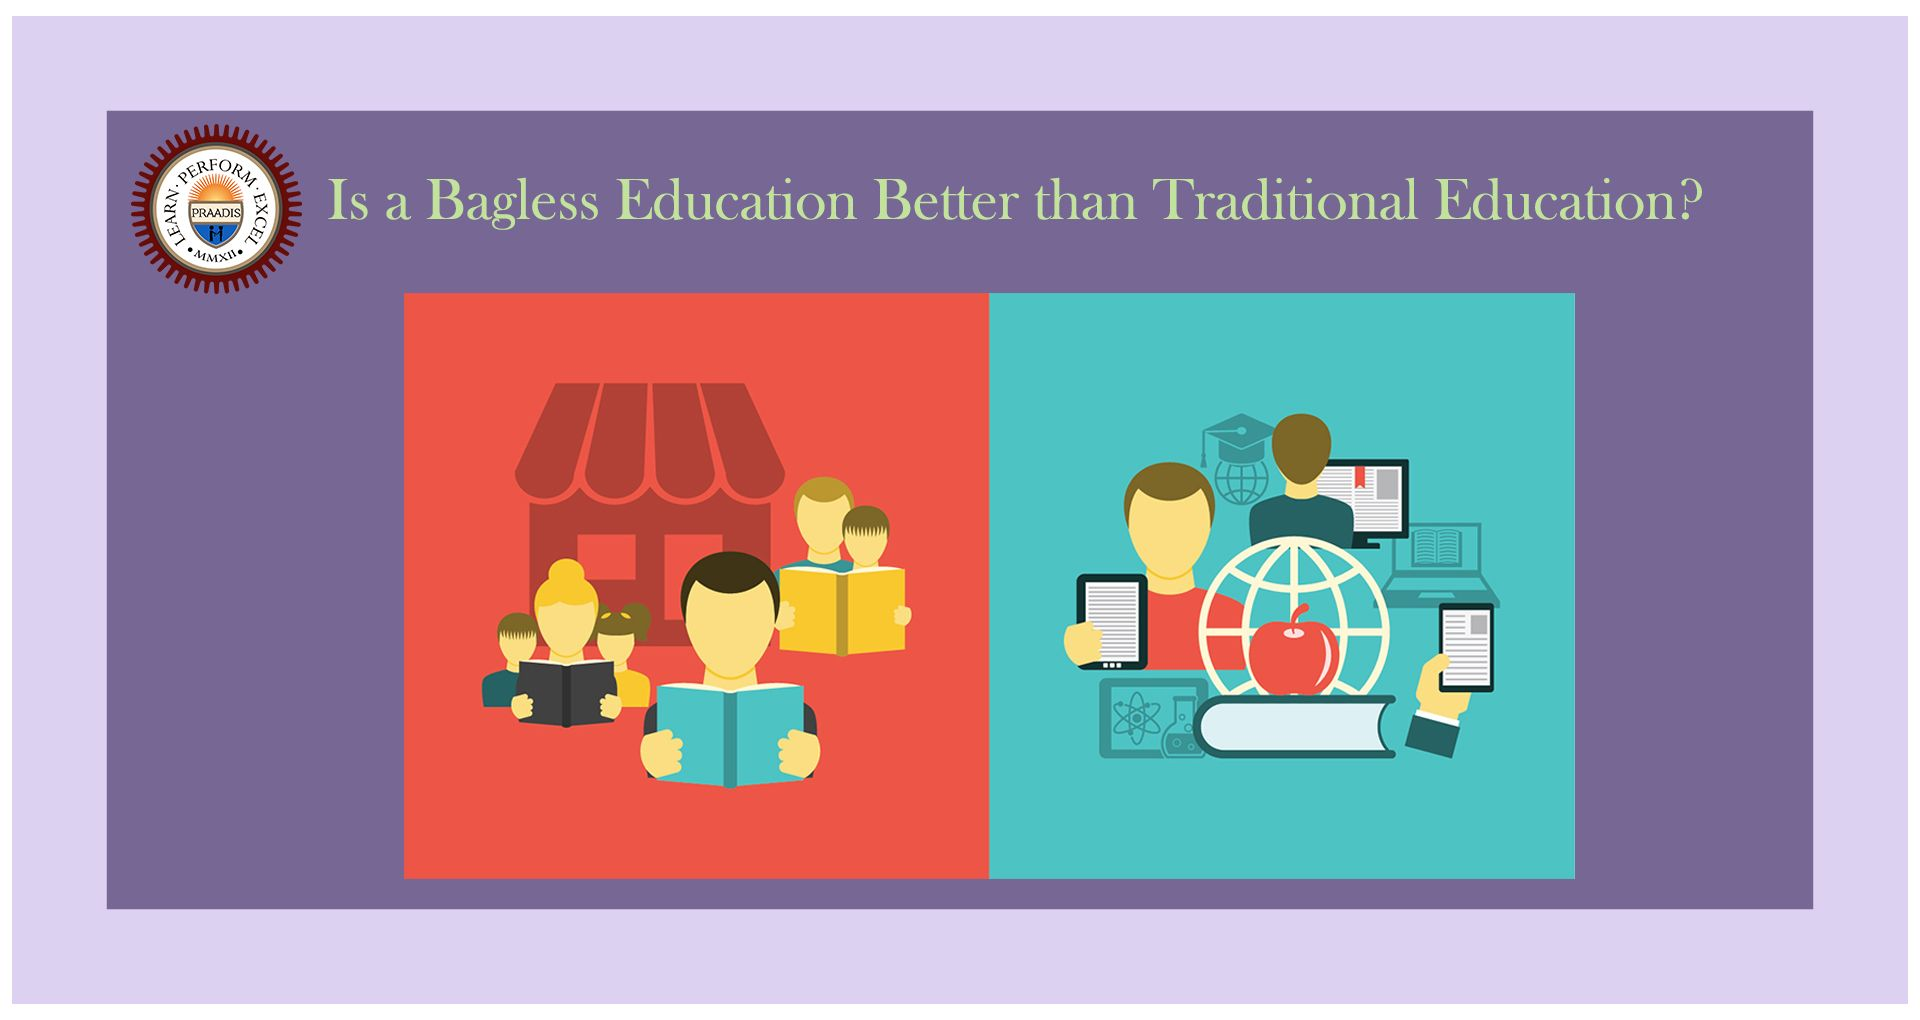 Is a Bagless Education Better than a Traditional Education?